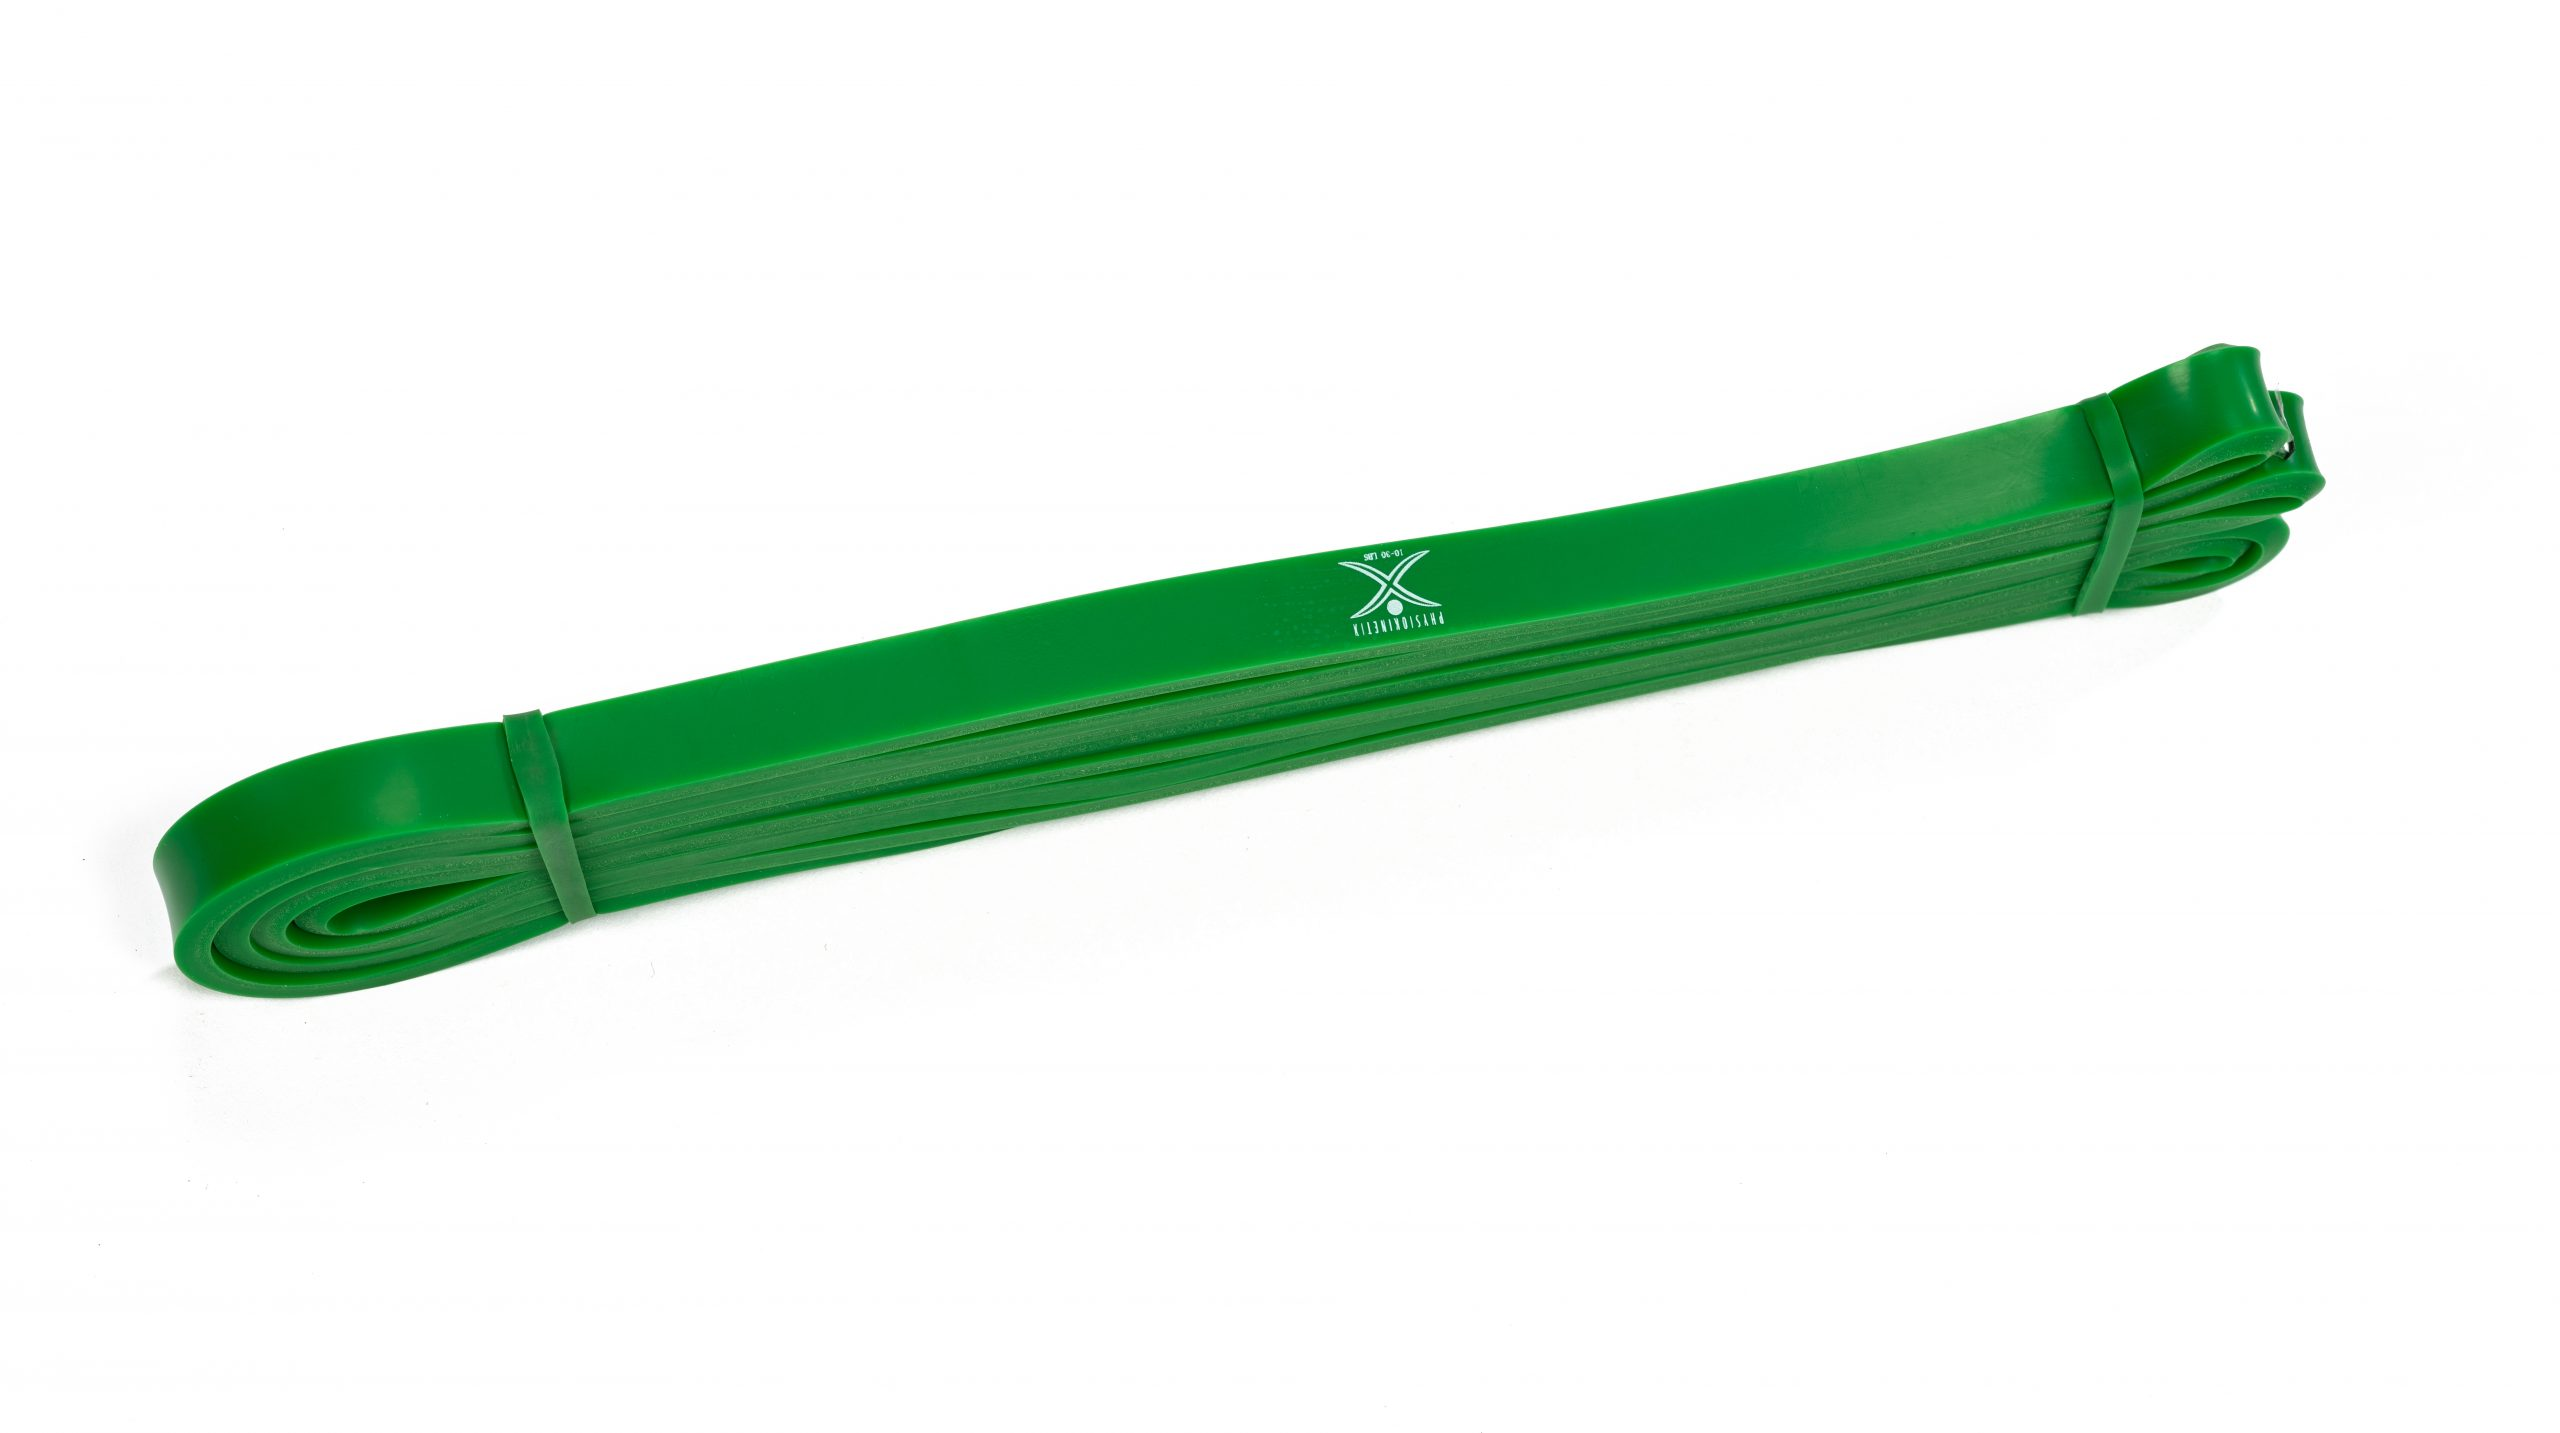 PKT Green Band - Stability